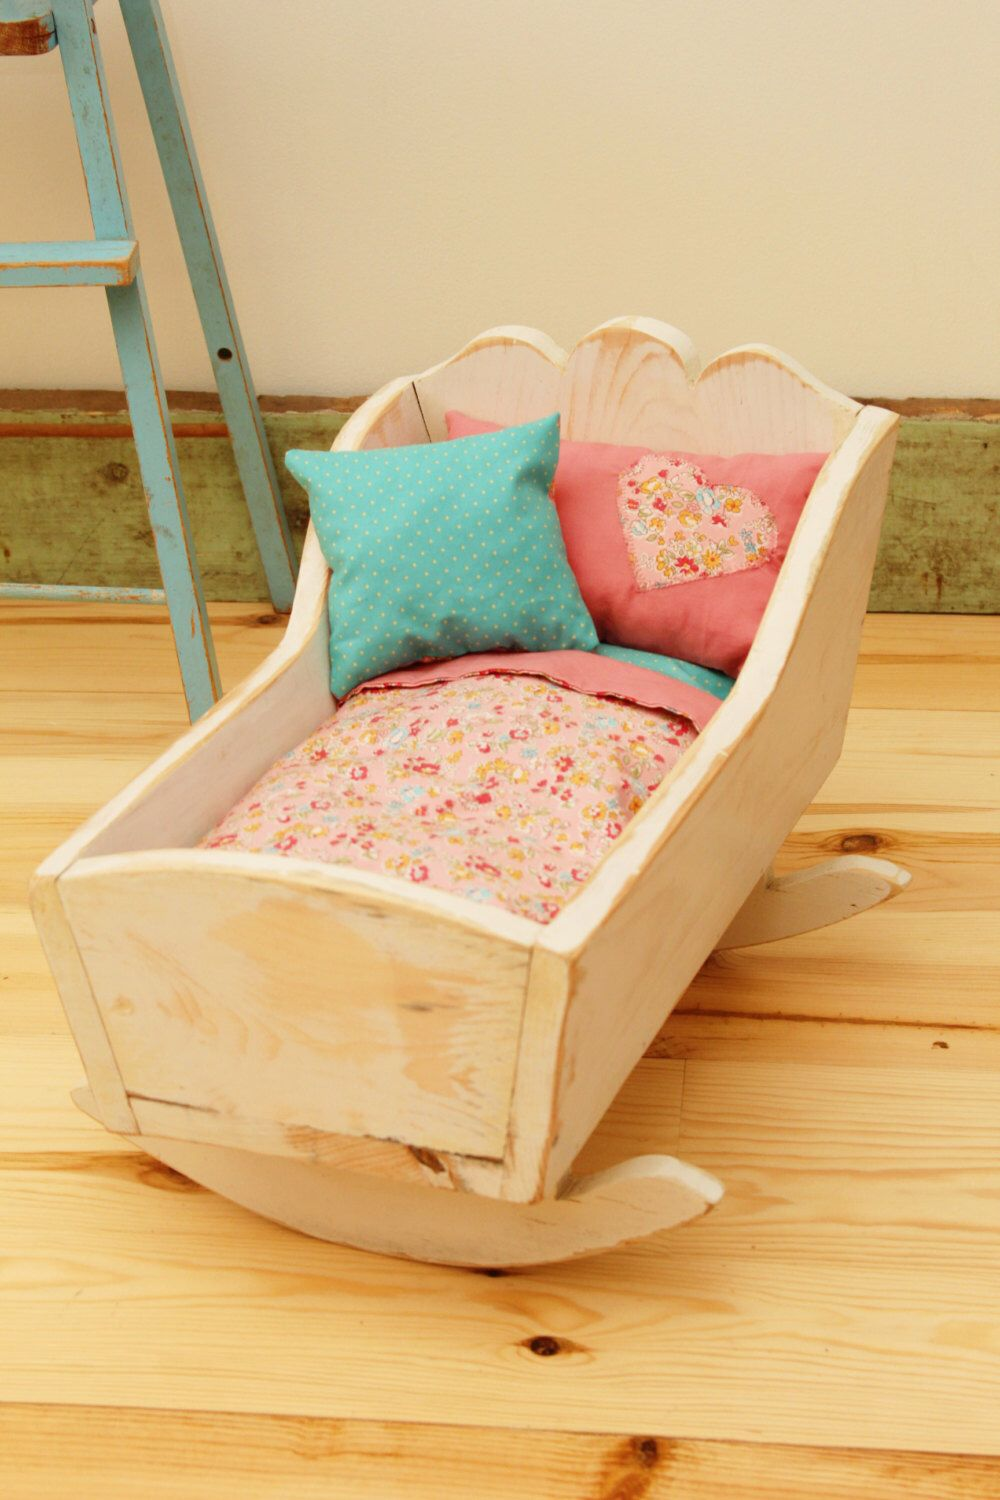 refinished vintage shabby chic doll cradle with bedding by on etsy https